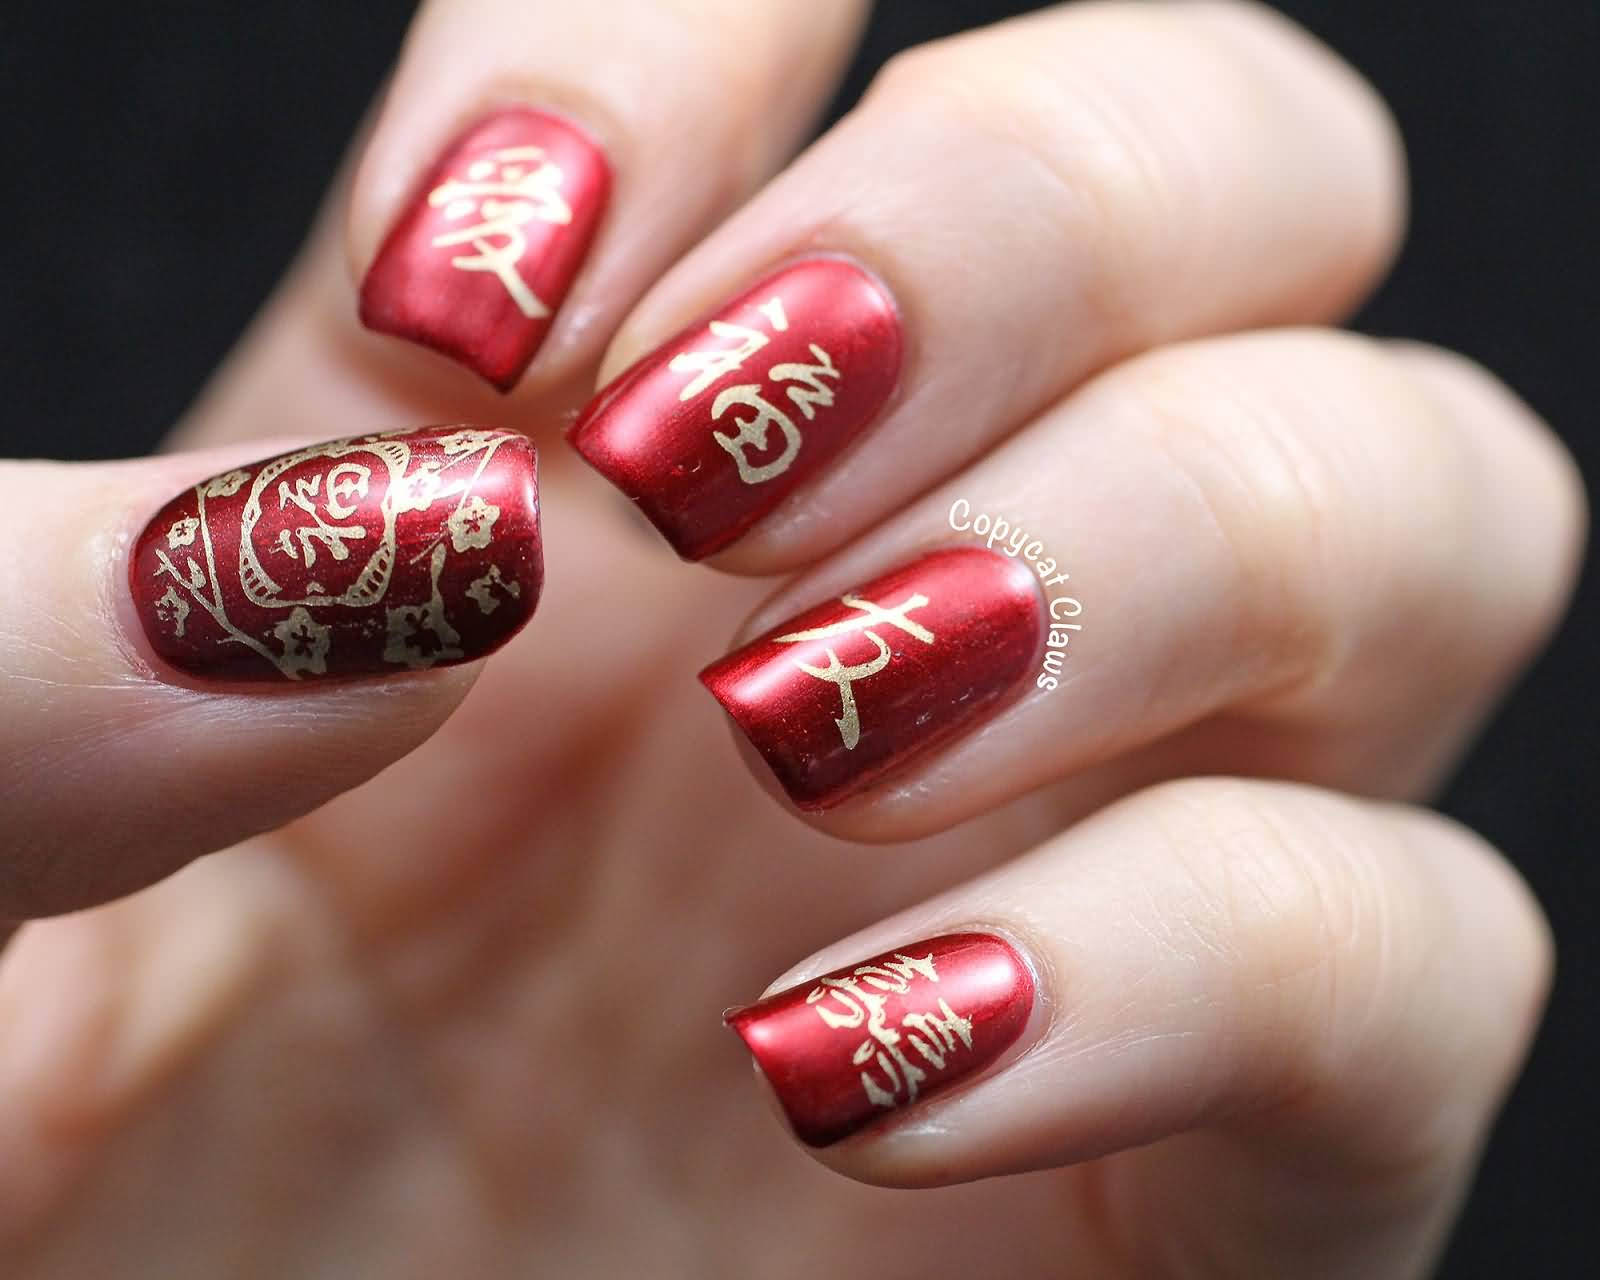 Golden Chinese Symbols Nail Art On Red Nails